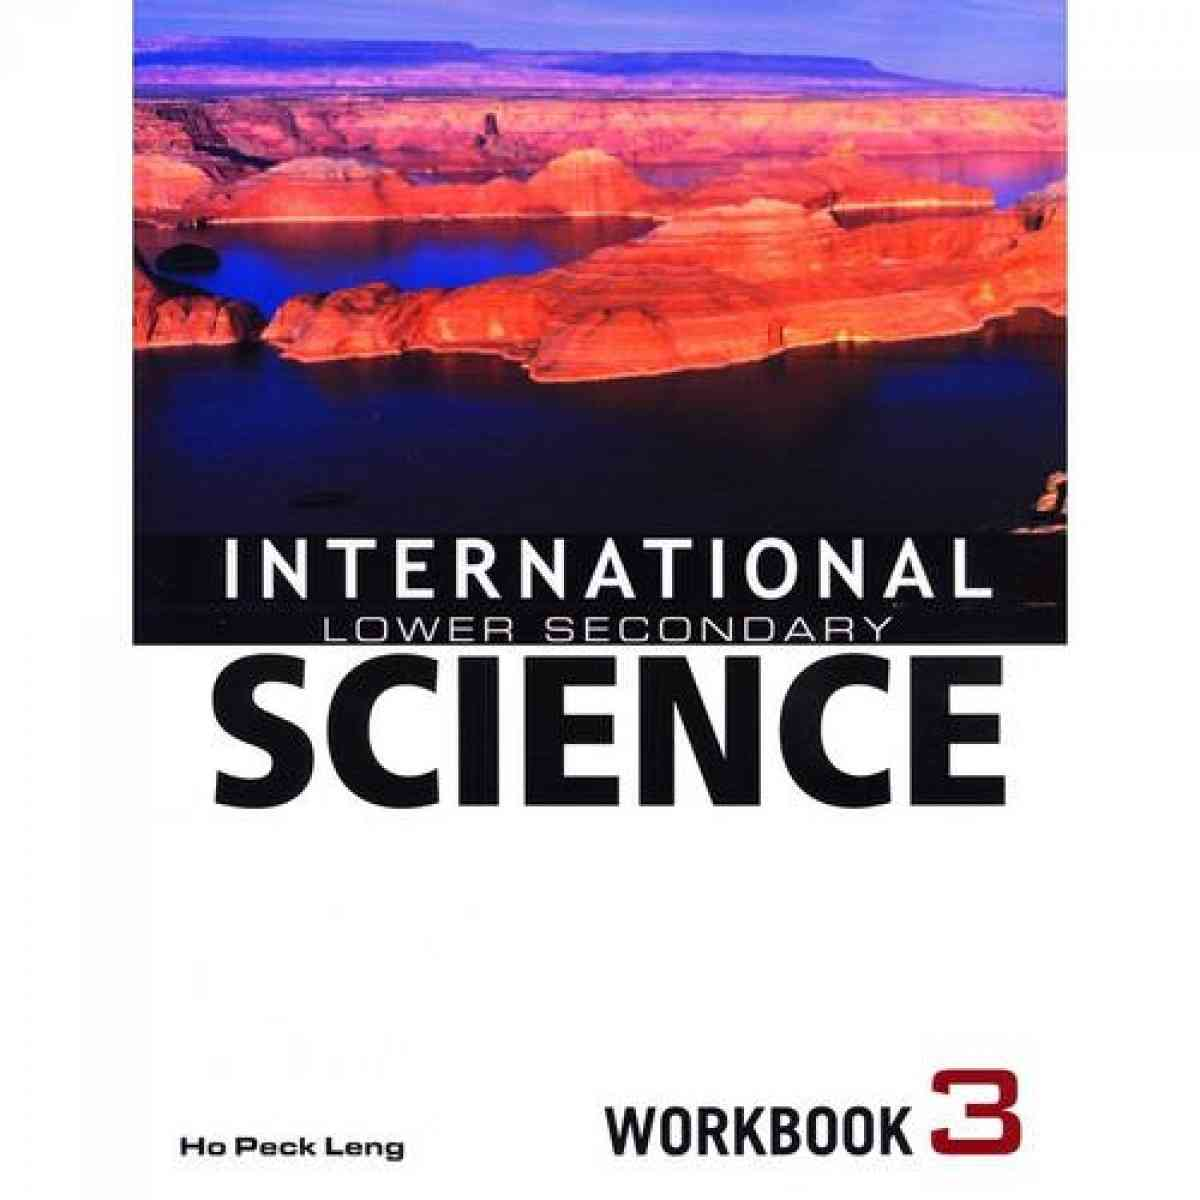 International Lower Secondary Science Work Book 3